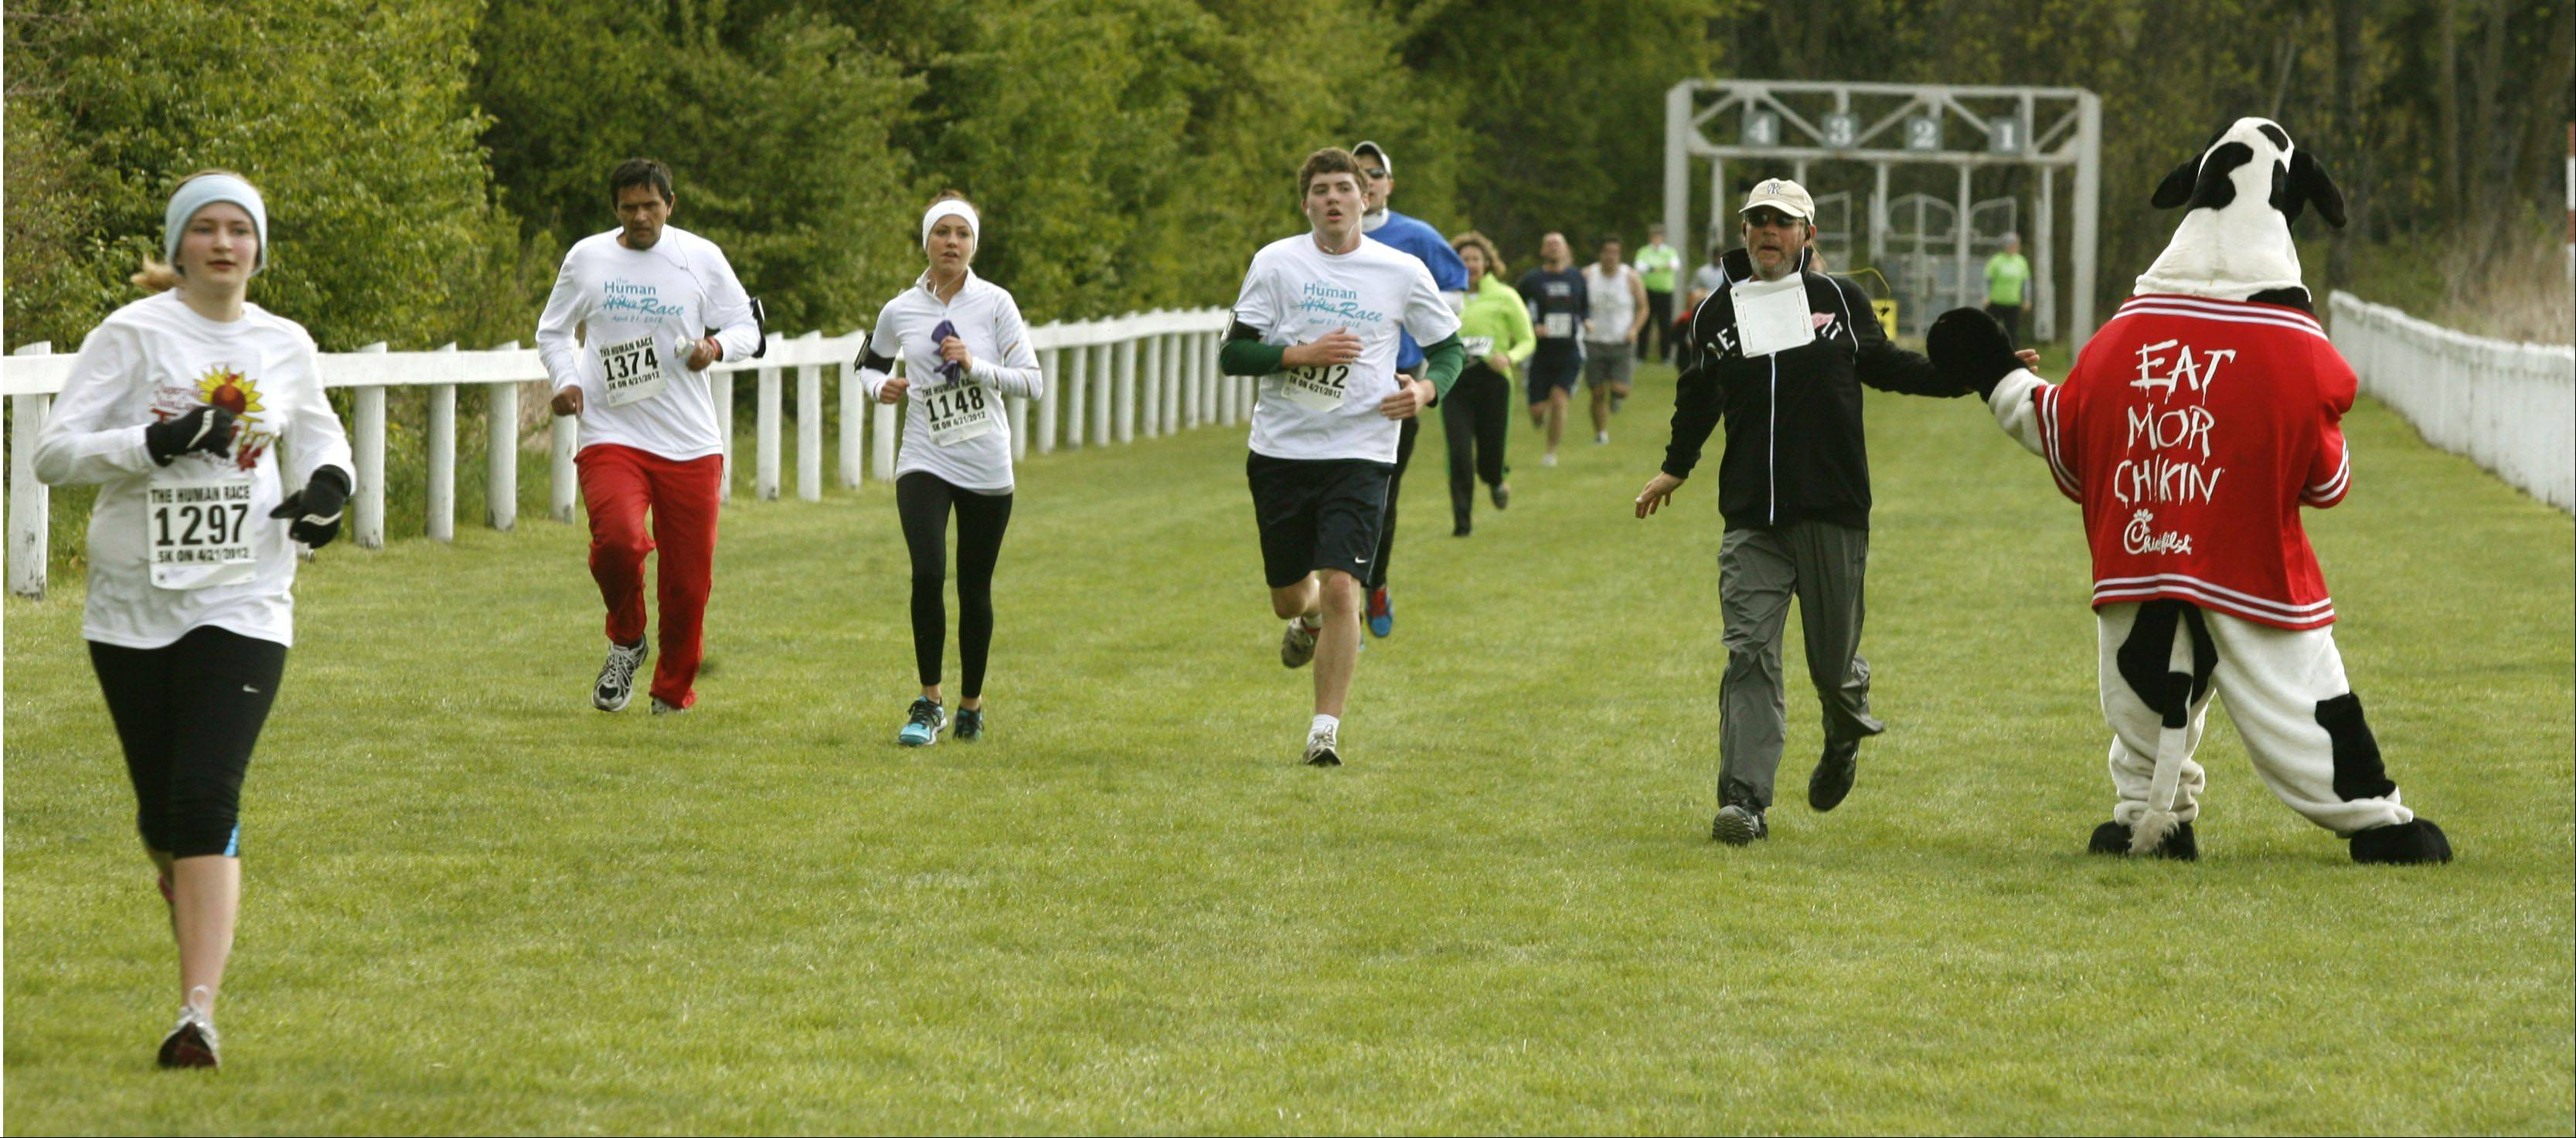 The Human Race, started last year by Giving DuPage, features a 5K run and 2-mile fitness walk in which participants choose which DuPage County cause benefits from their entry fees.